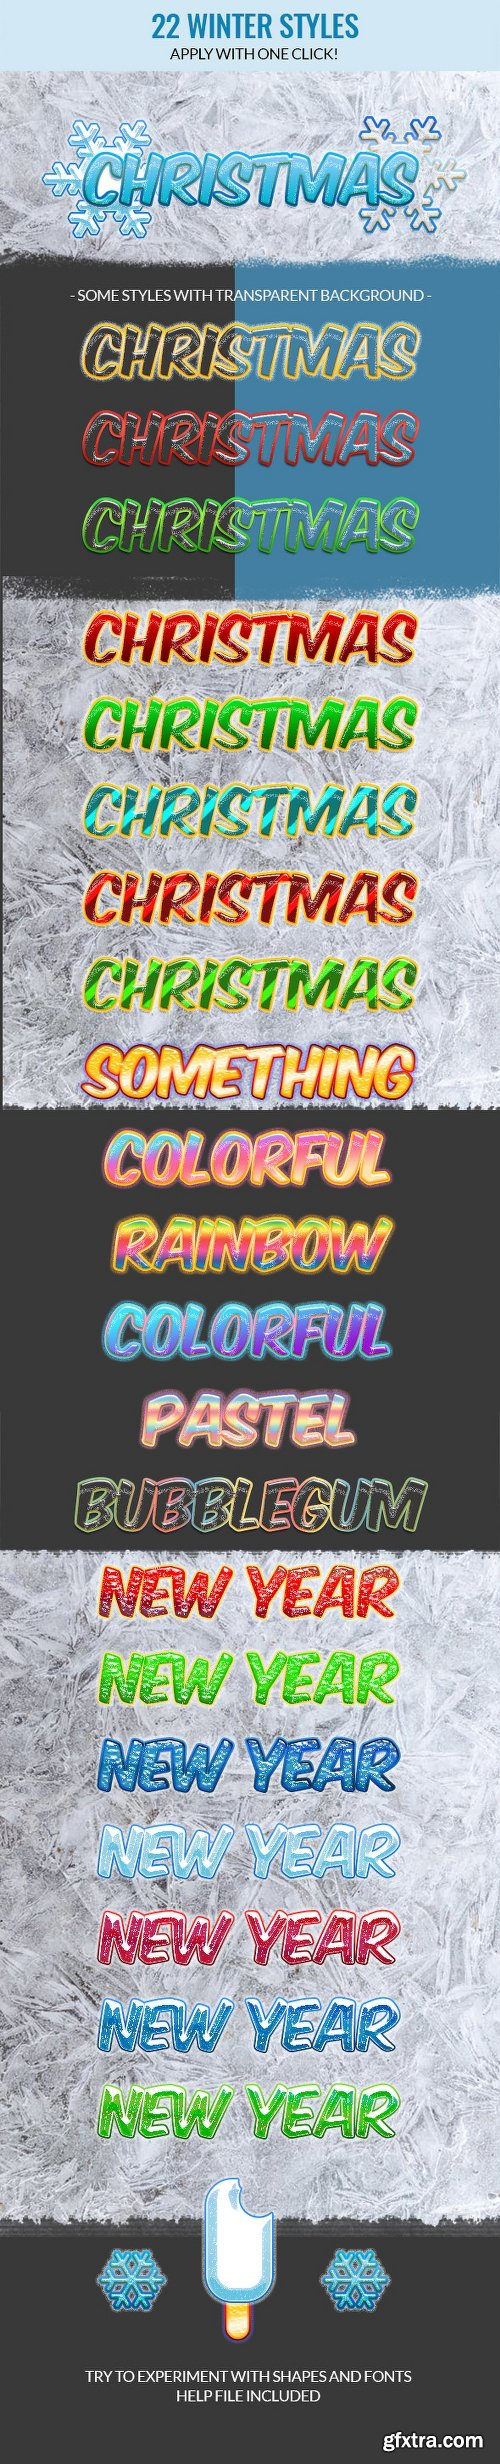 Graphicriver Holiday Christmas Photoshop Text Styles 21078144